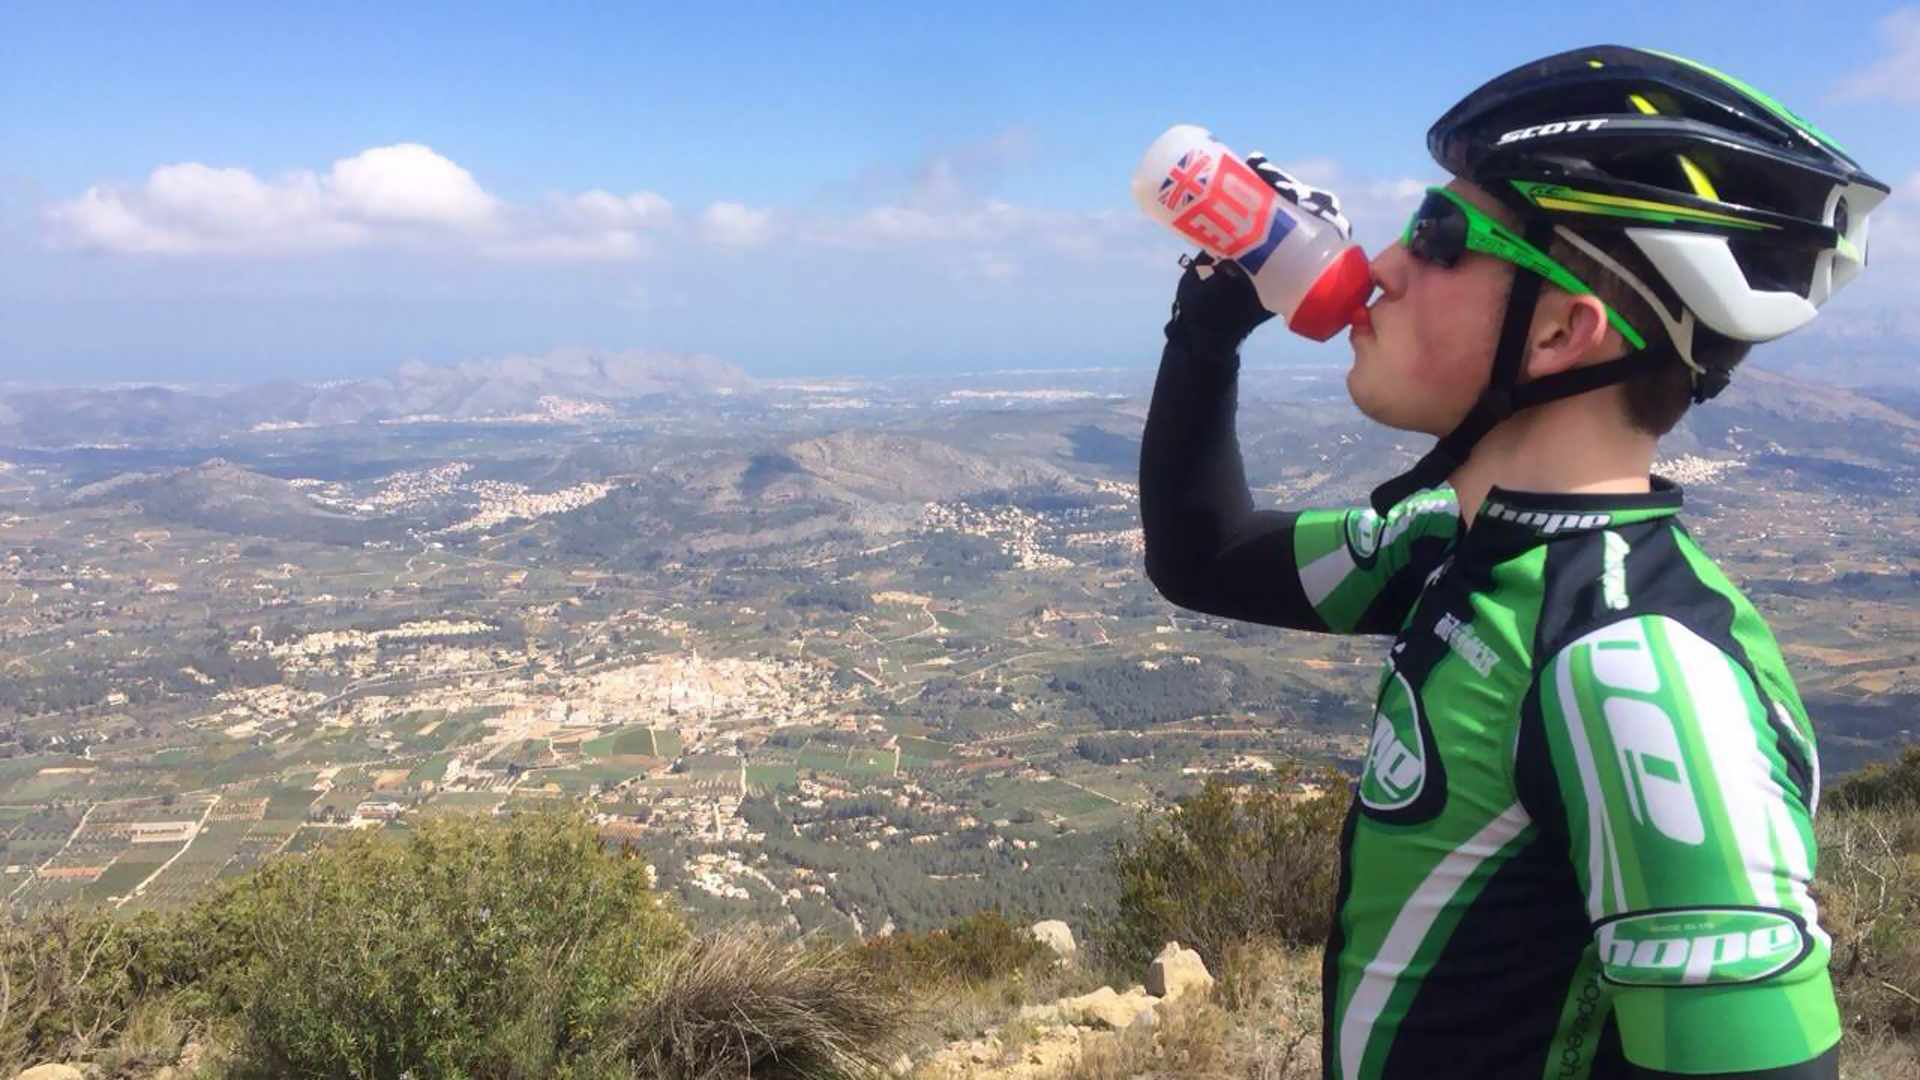 Refuelling properly at the end of a ride is essential for recovery and performance gains